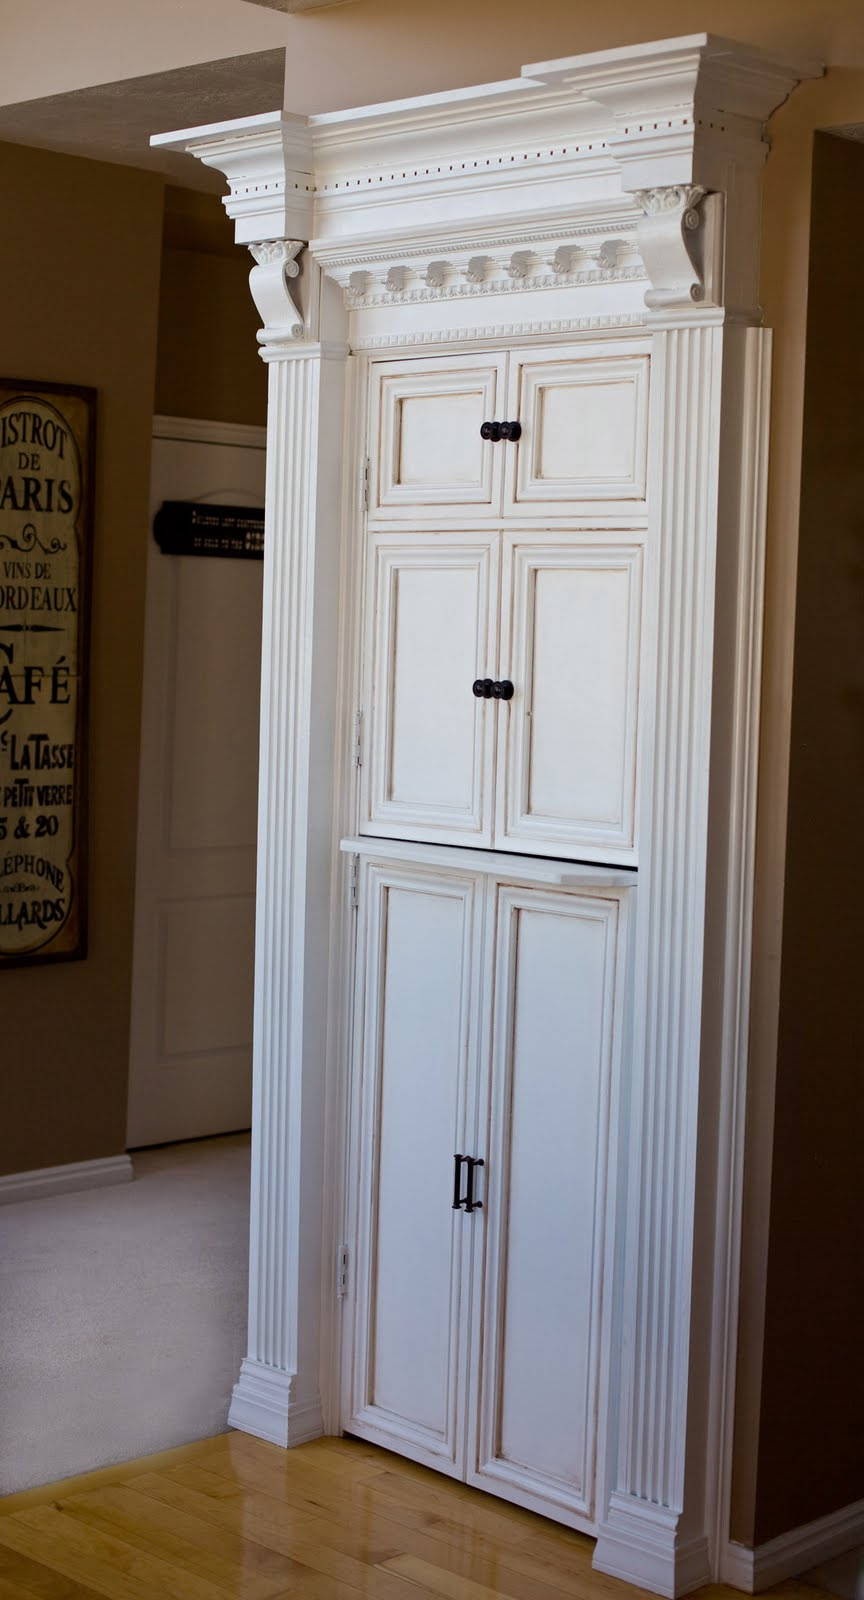 Be Different...Act Normal: Faux Cabinetry Pantry Door Makeover